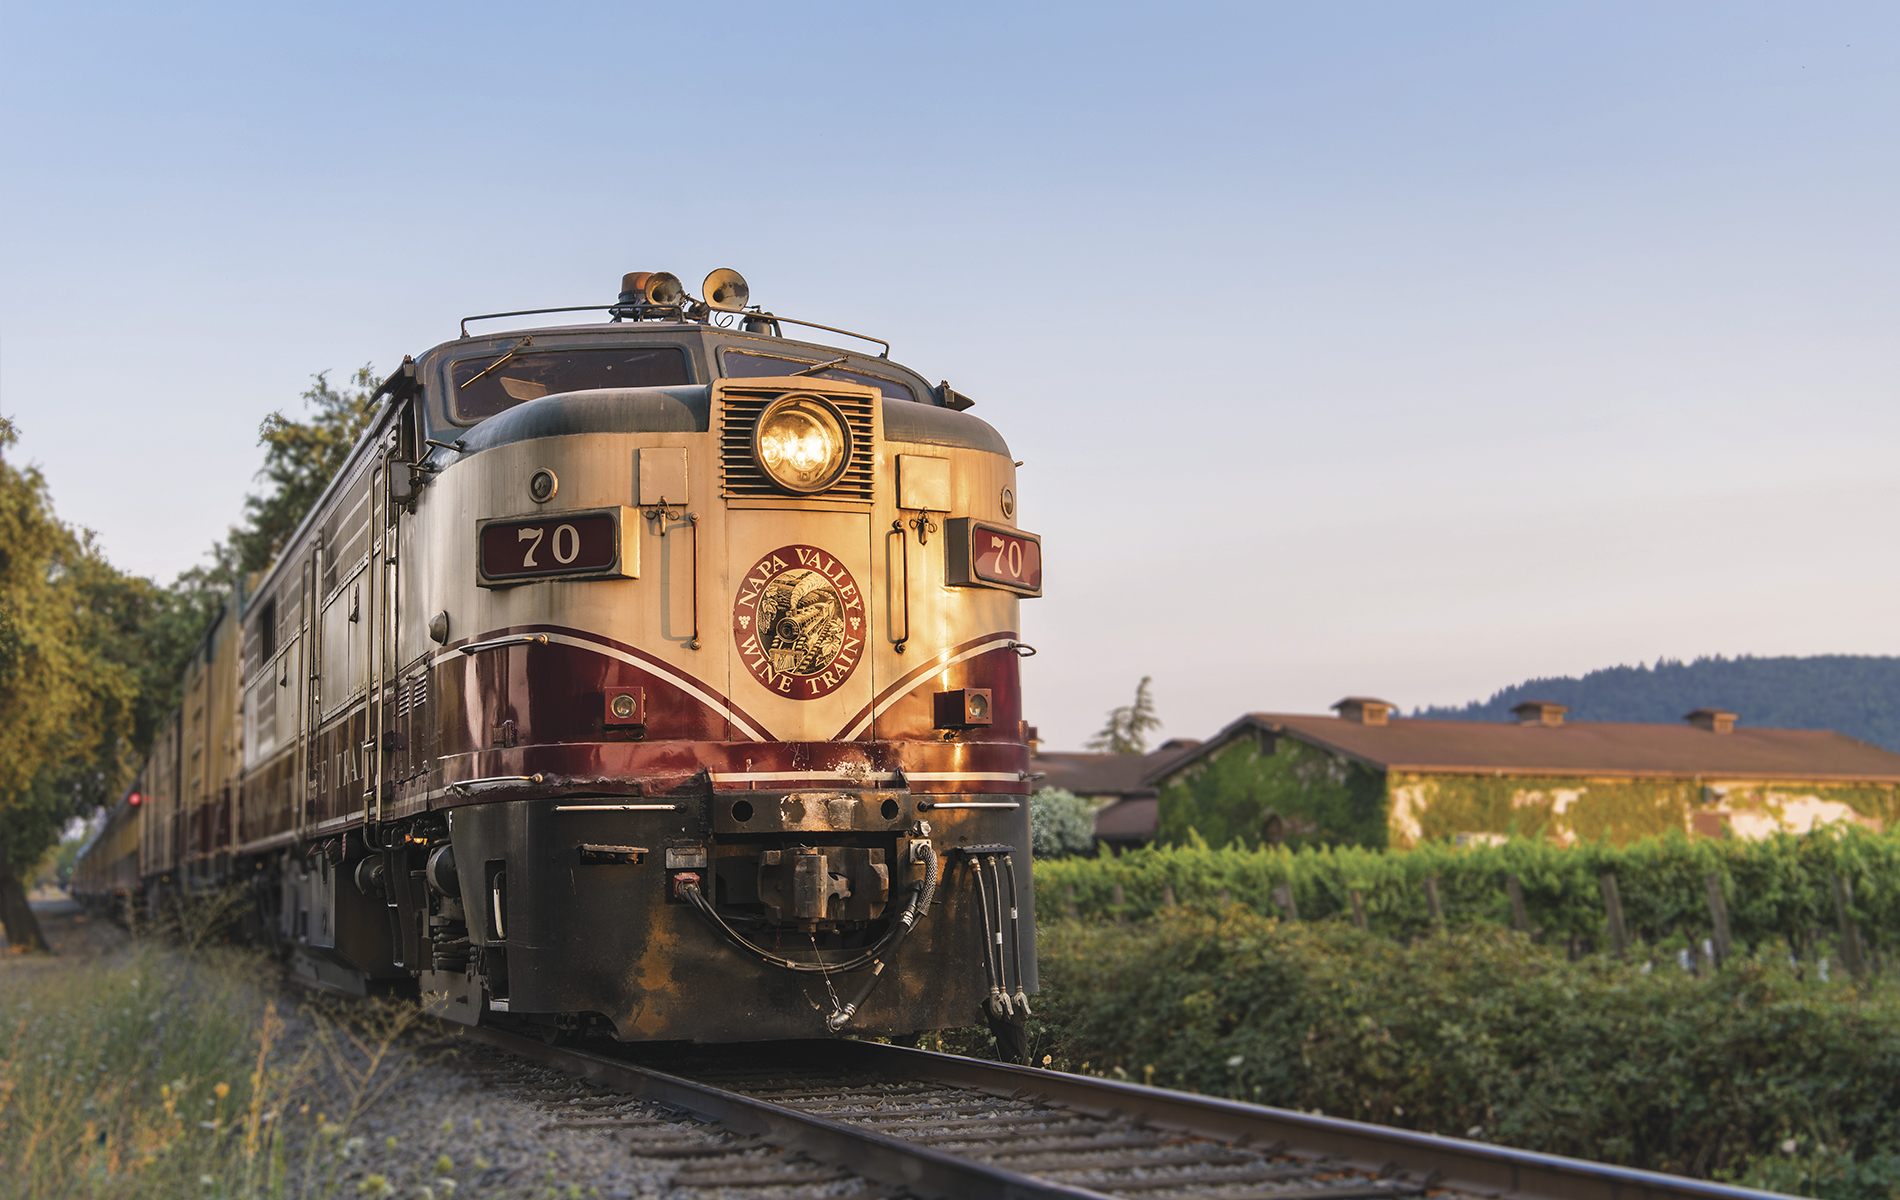 Napa Valley Wine Train adventurer VIE 2017